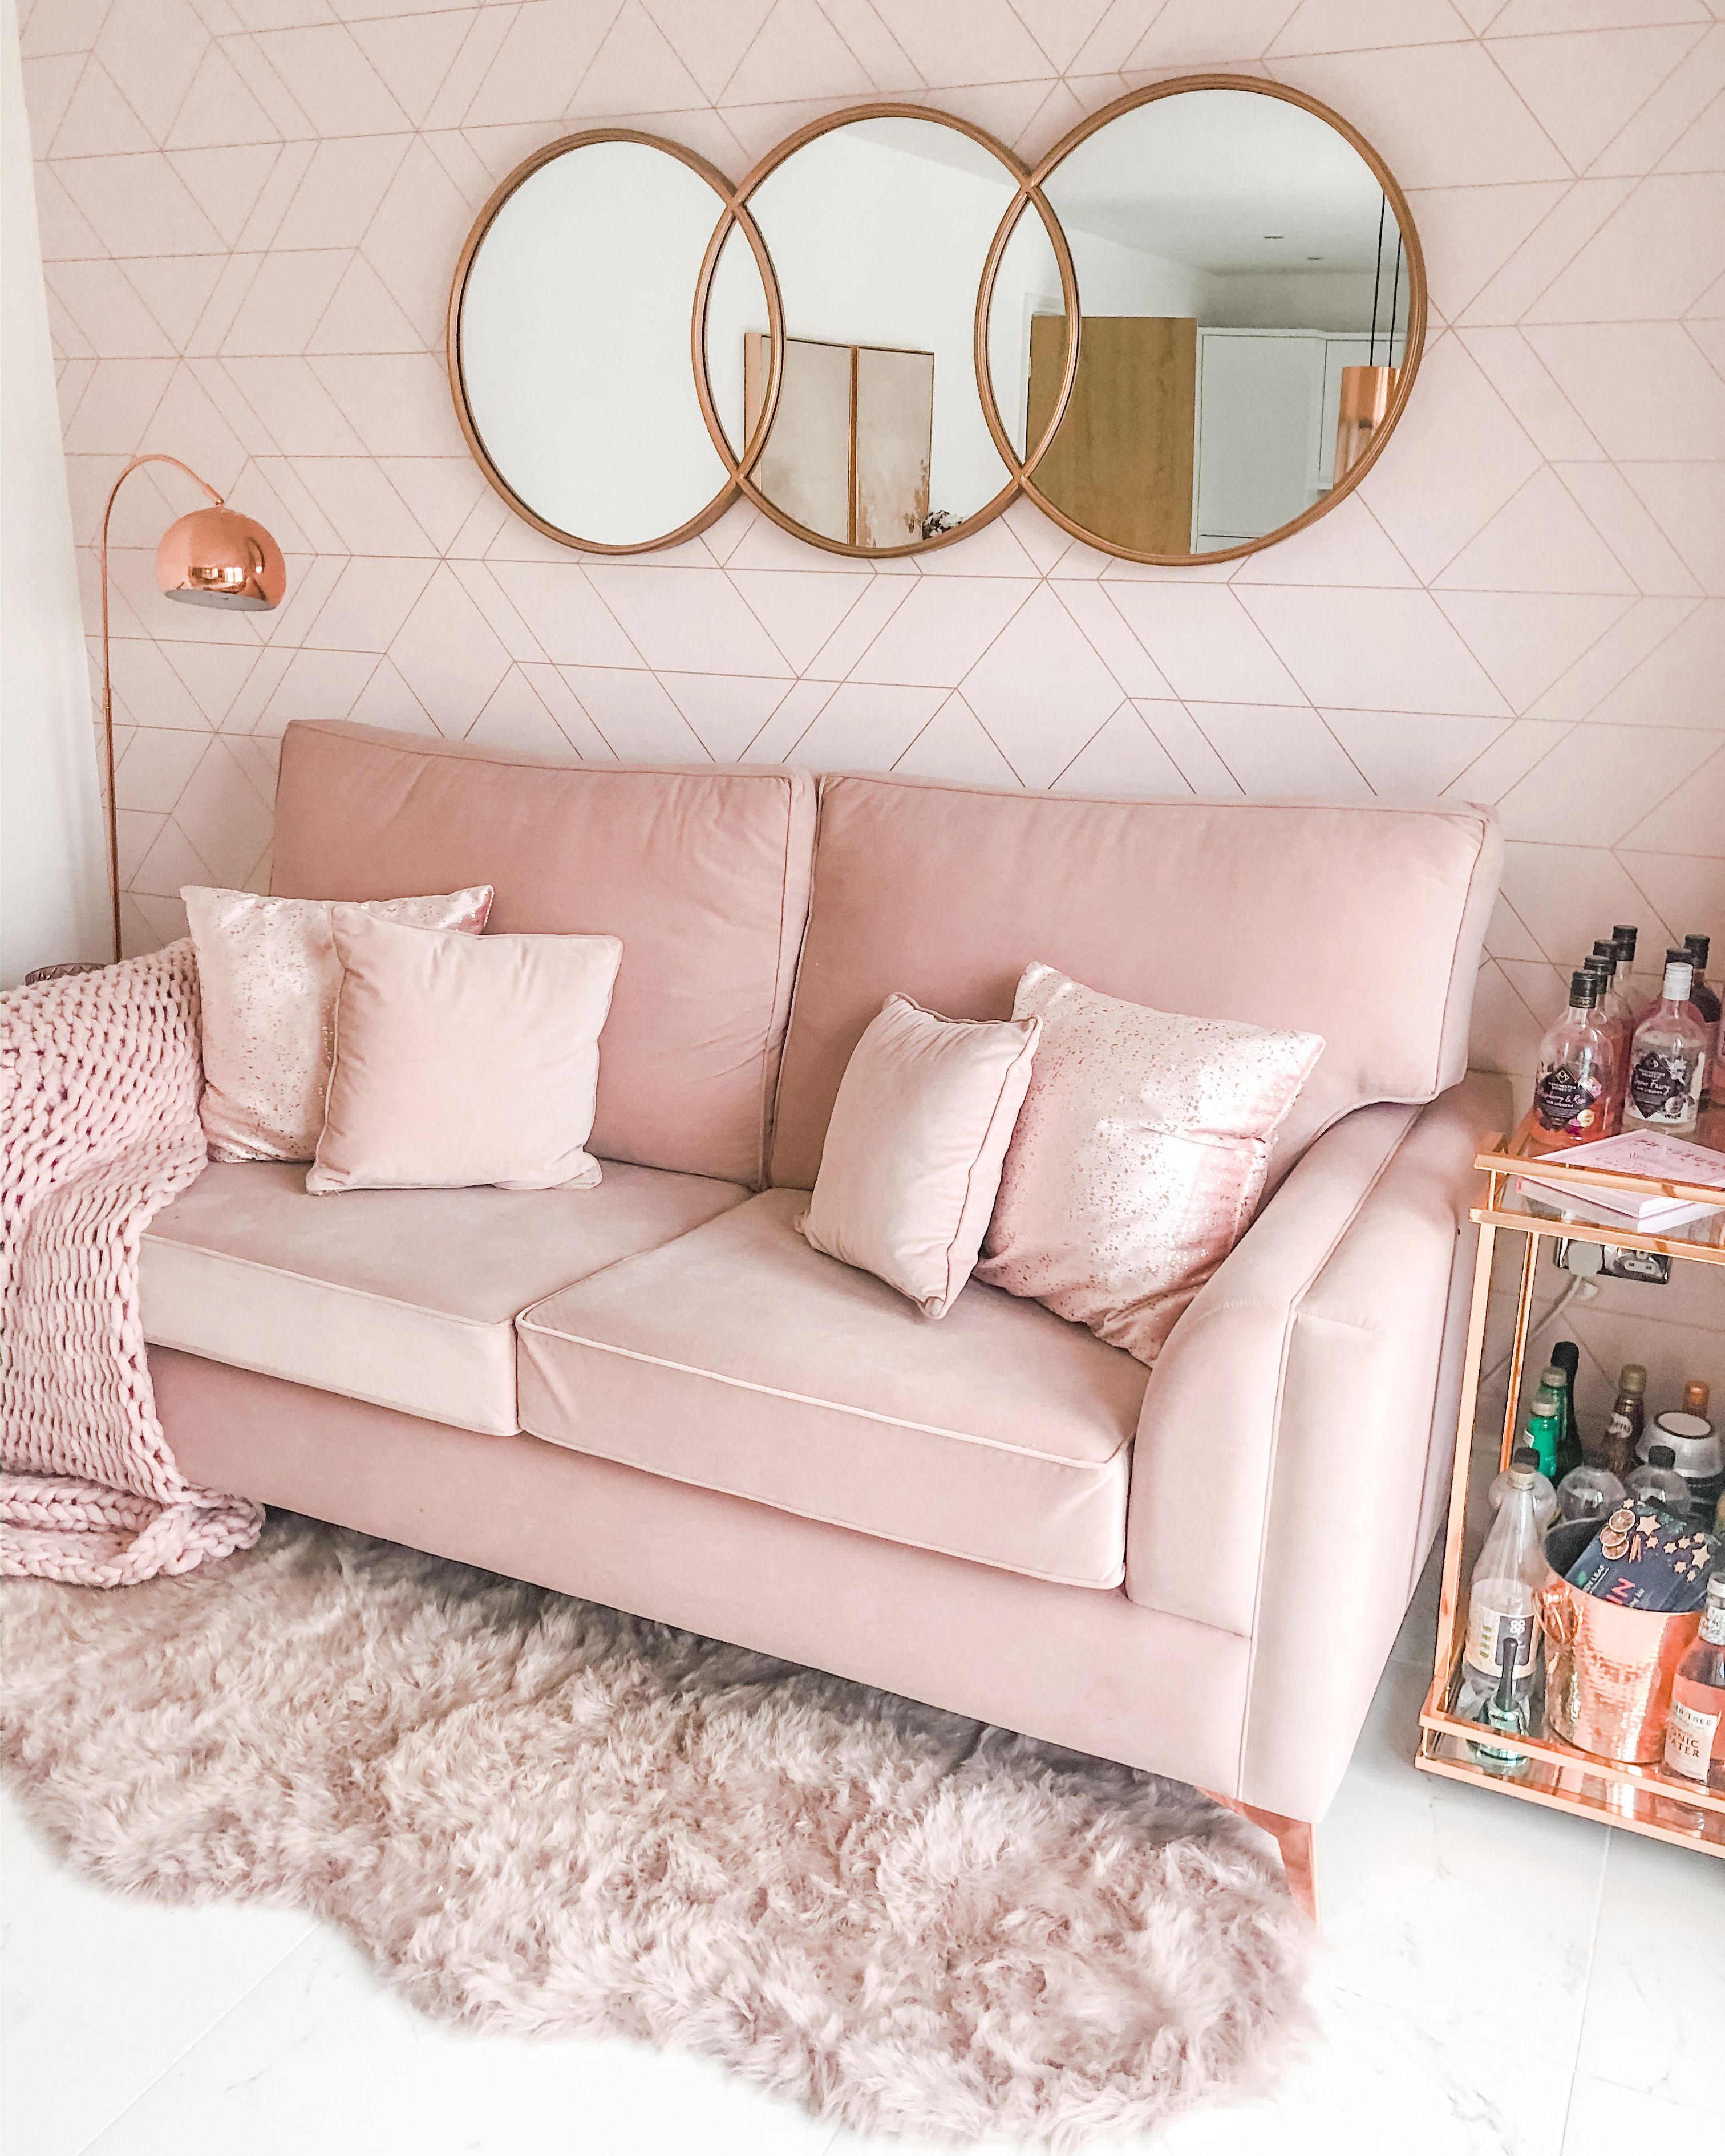 Blush Pink Sofa Blush Pink Living Room Blush Pink Dining Room Blush Pink Decor Blush Pink Home Inspirati In 2020 Gold Sofa Blush Pink Living Room Pink Dining Rooms